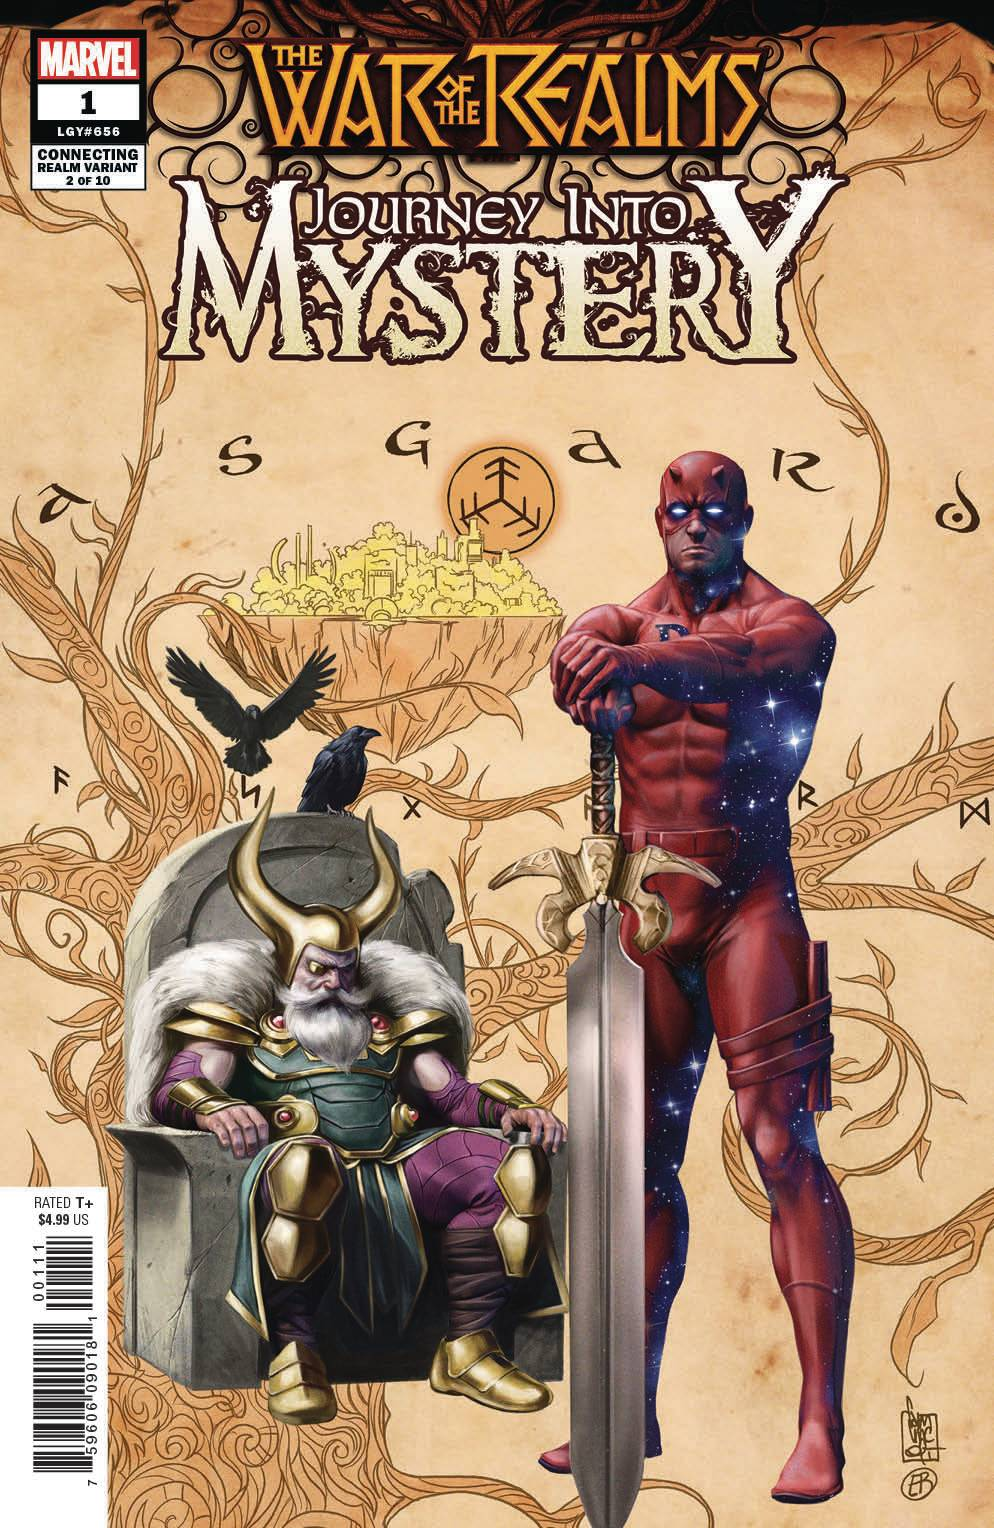 WAR OF REALMS JOURNEY INTO MYSTERY 1 of 5 DJURDJEVIC CONNECTING REALM VAR.jpg